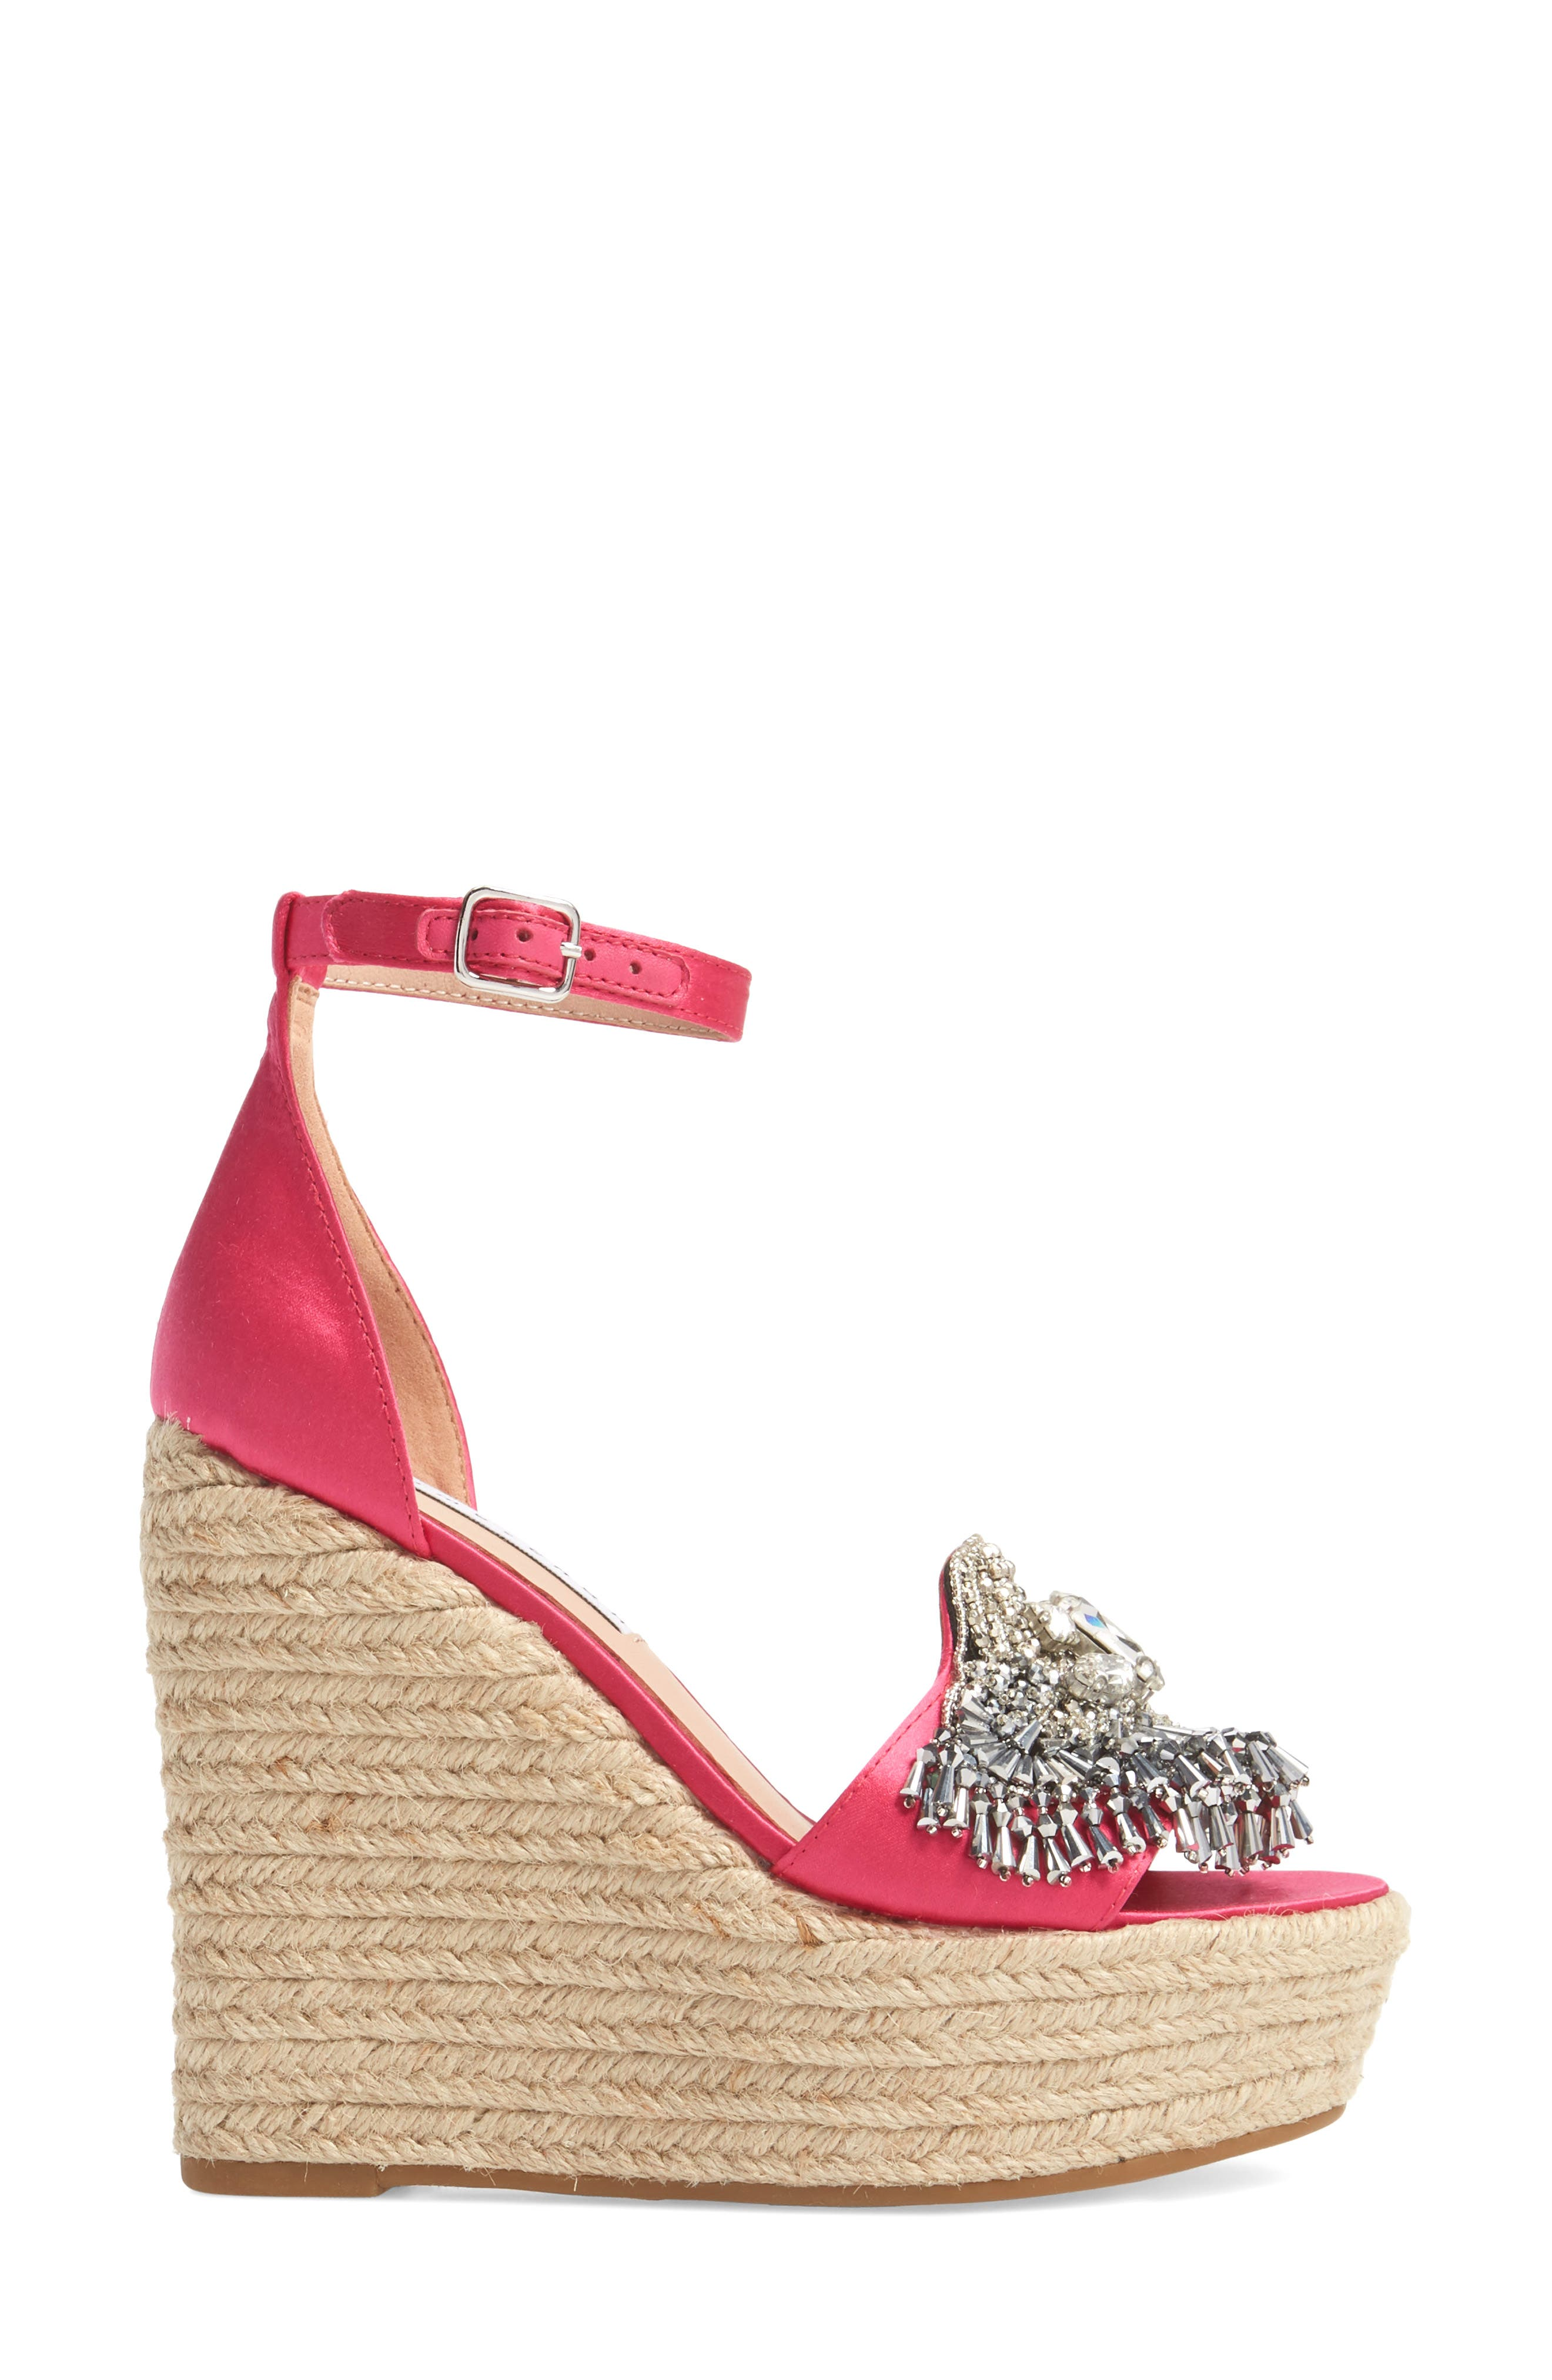 Maxim Platform Wedge Sandal,                             Alternate thumbnail 3, color,                             Posey Satin